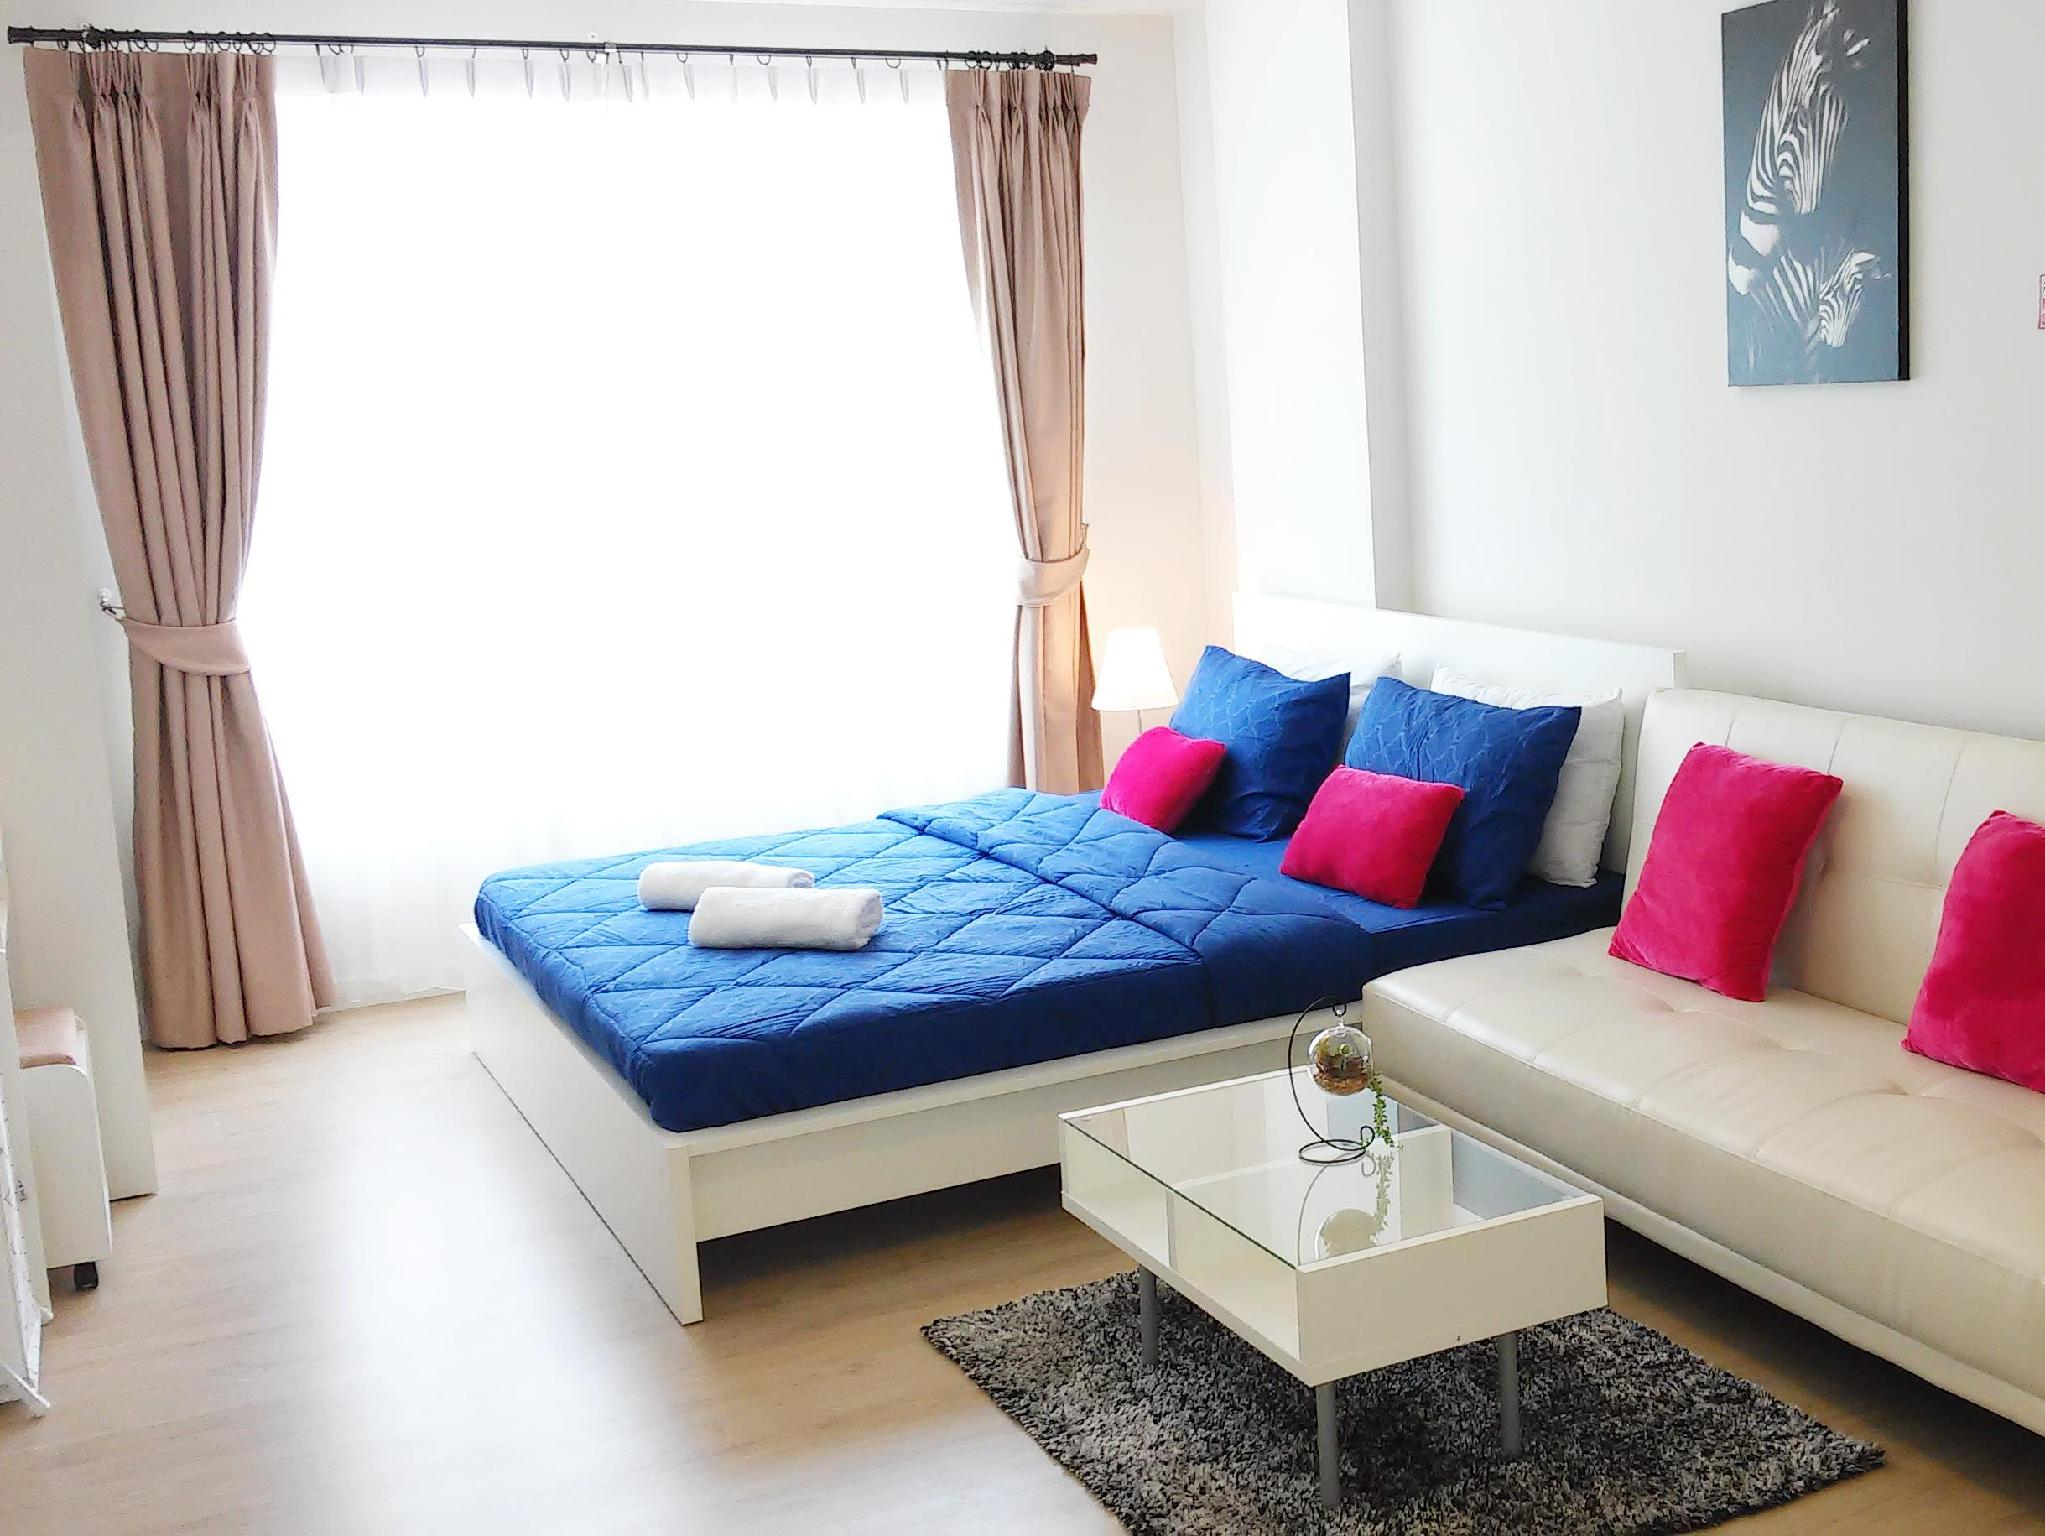 Baan Peang Ploen Hua Hin Condo on Holidays B303 - Hotels and Accommodation in Thailand, Asia